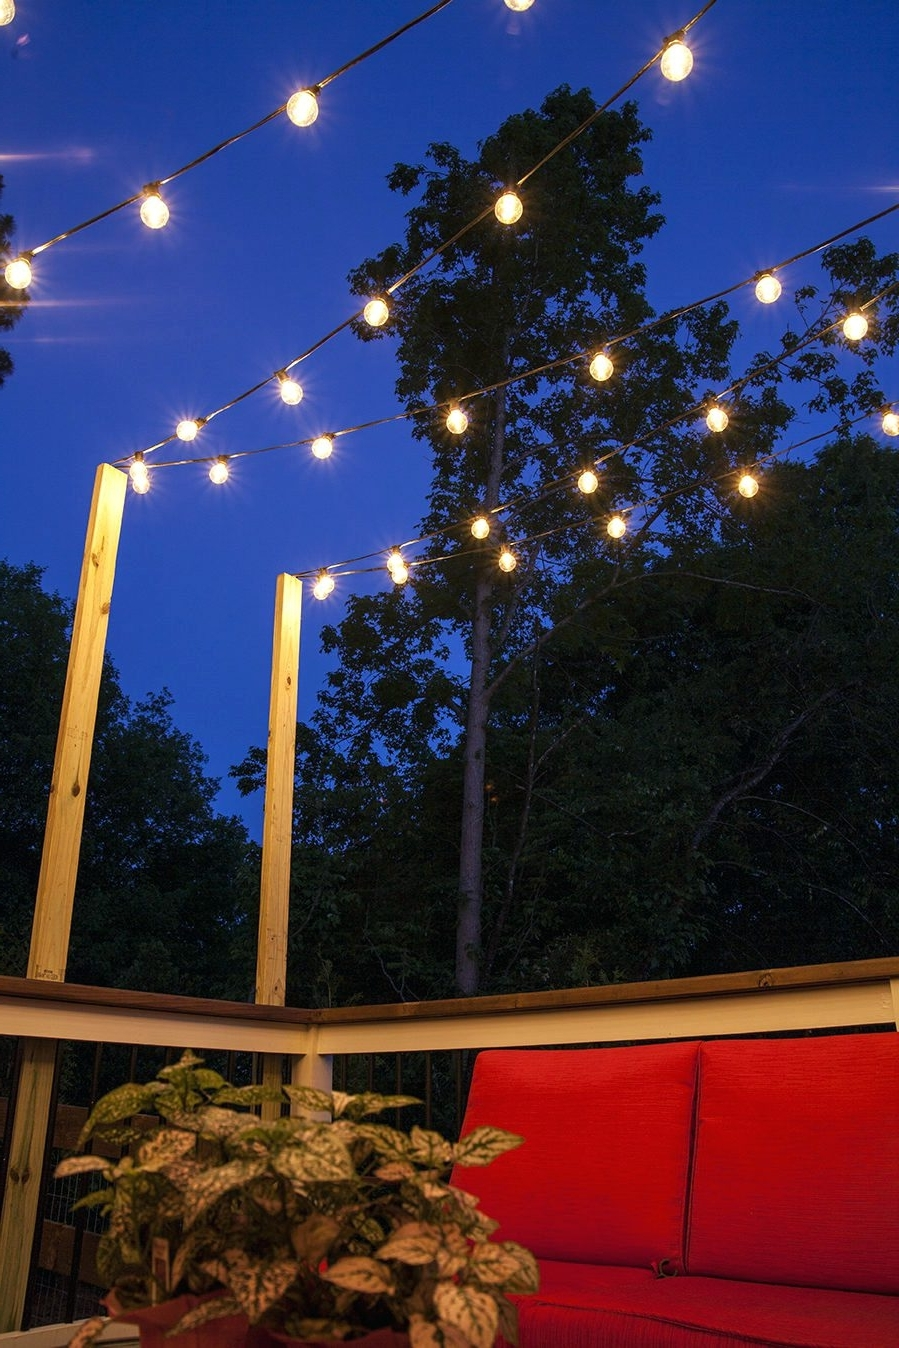 Most Current Patio Ideas ~ Costco Outdoor Patio Solar Lights Hang Patio String With Regard To Hanging Outdoor String Lights At Costco (View 15 of 20)